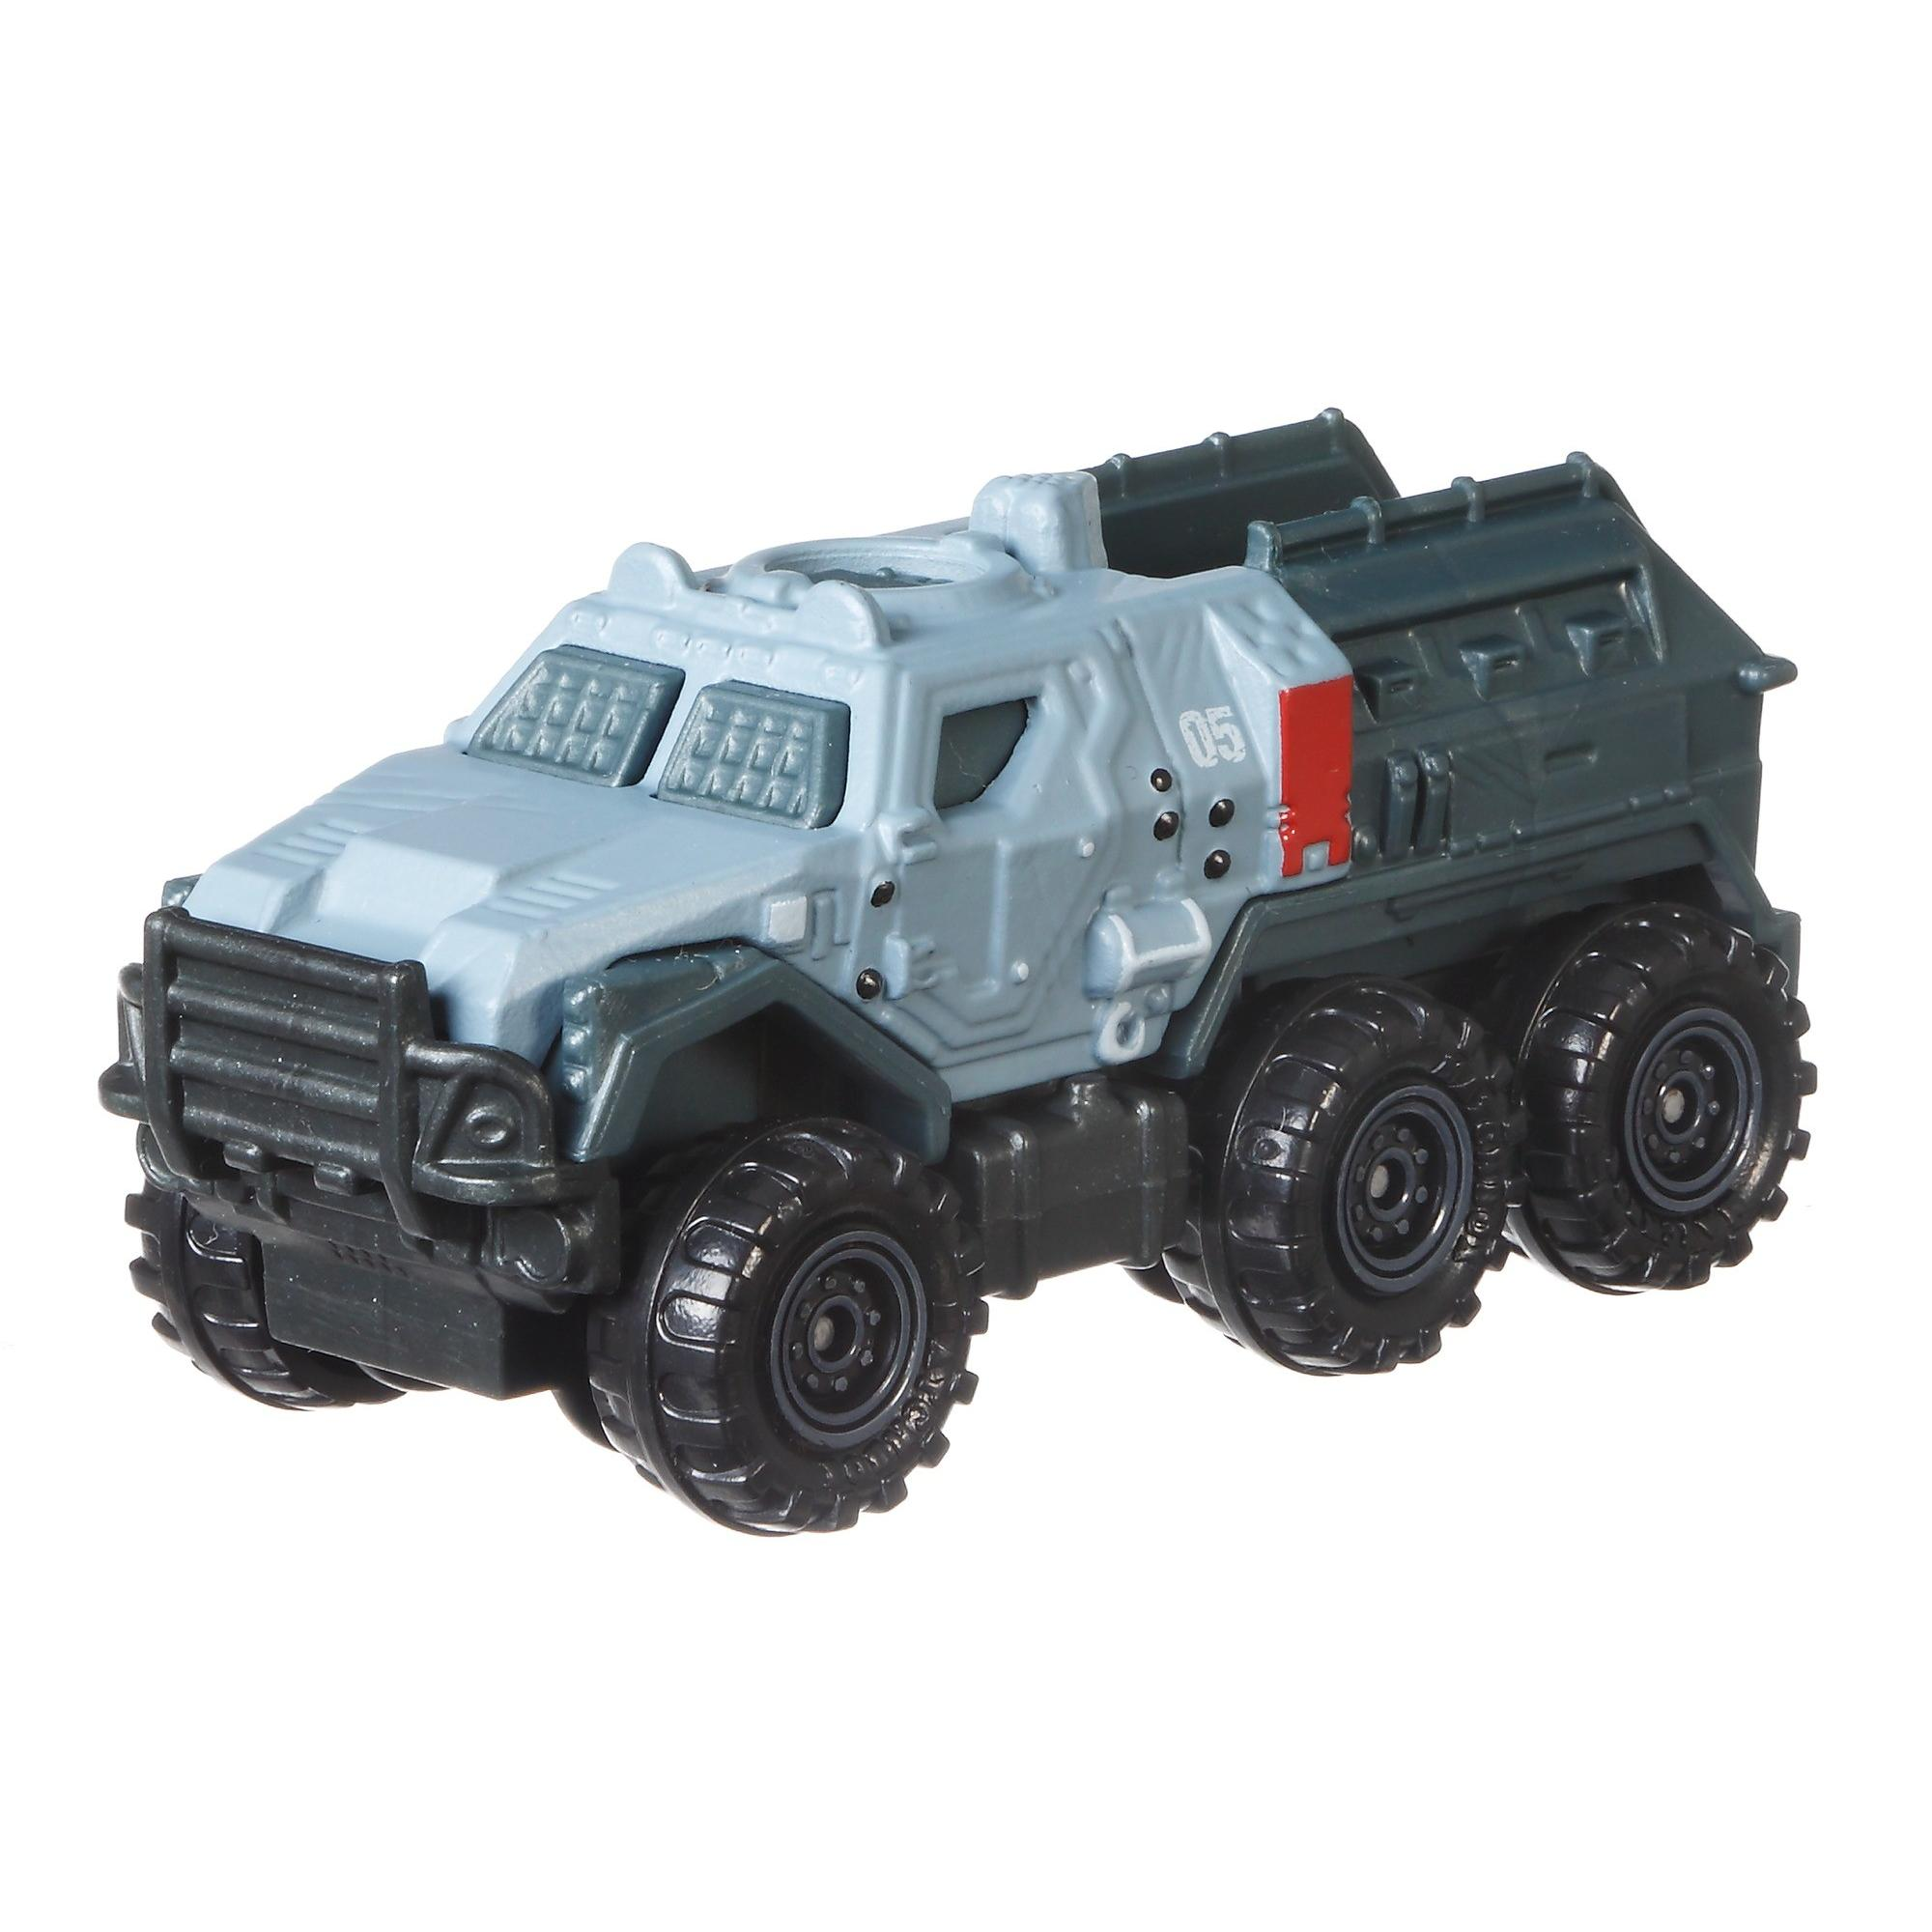 Matchbox Jurassic World Die-cast Vehicle (Styles May Vary) by Mattel